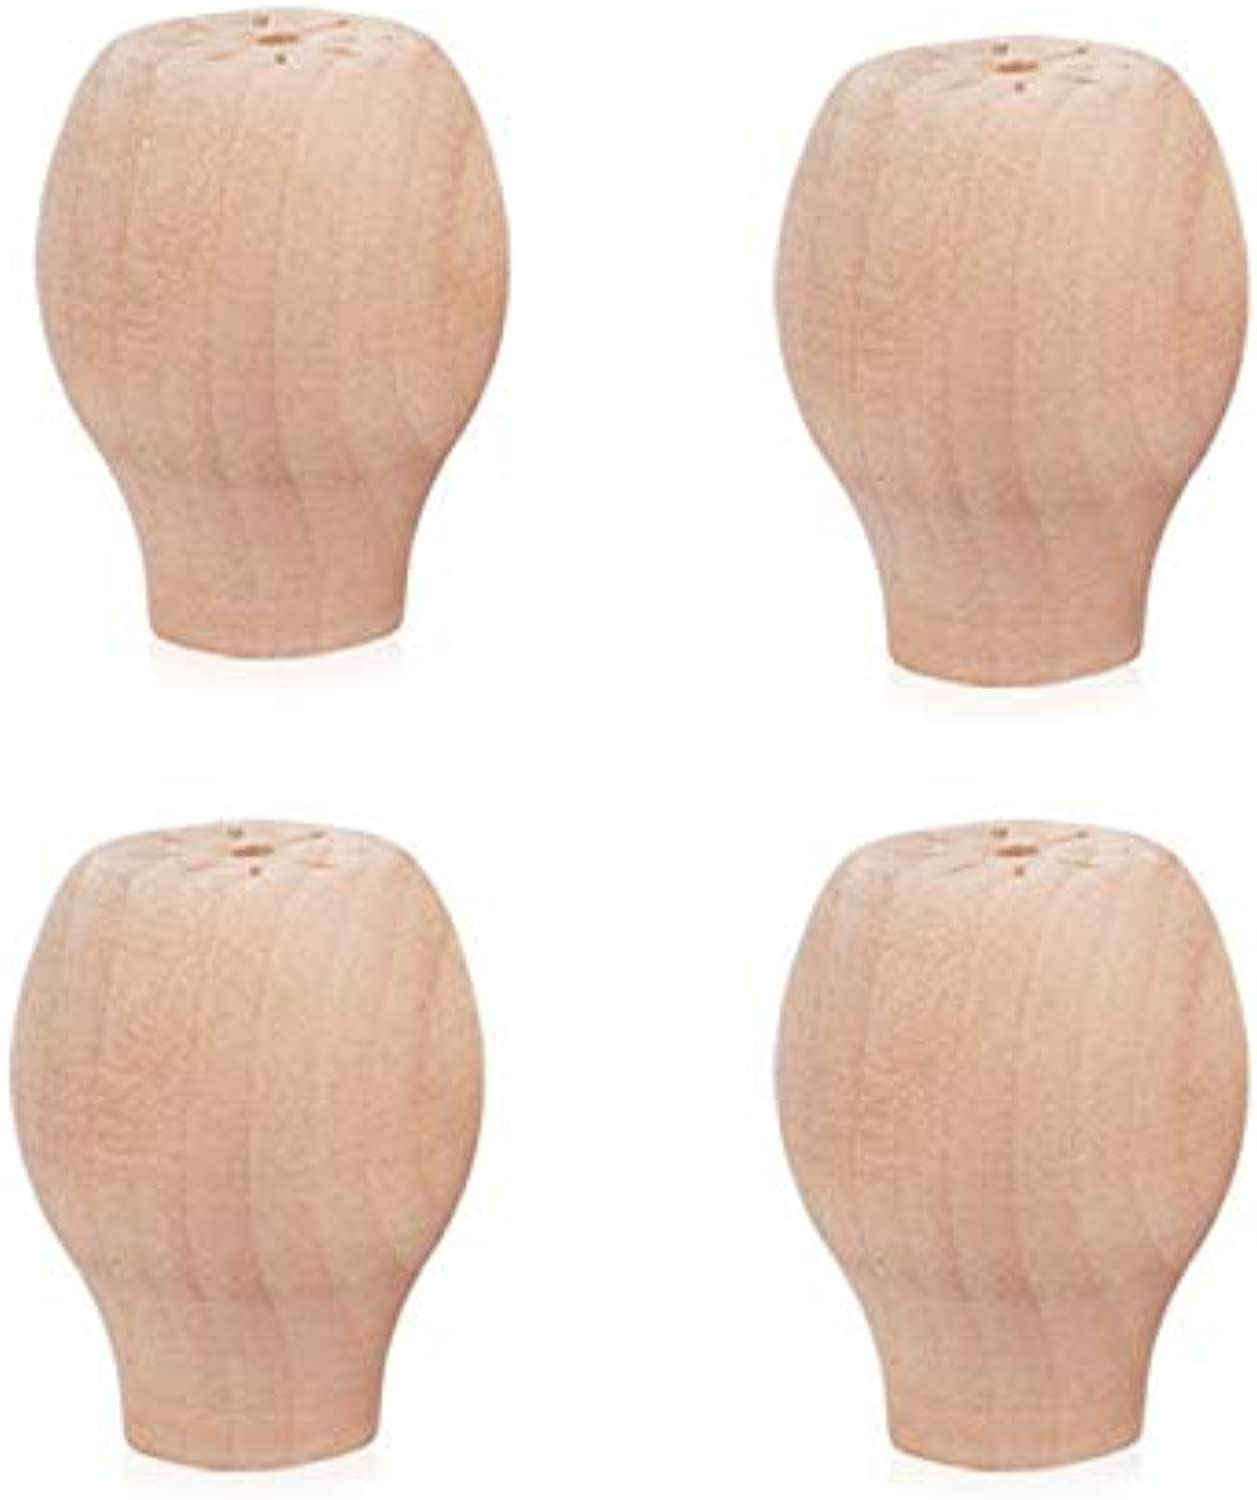 Solid Wood Sofa Legs Finished Furniture Feet Replacement Legs for Coffee Table Buffet Bedside Cabinet Cupboard Dressing Table(4pcs)